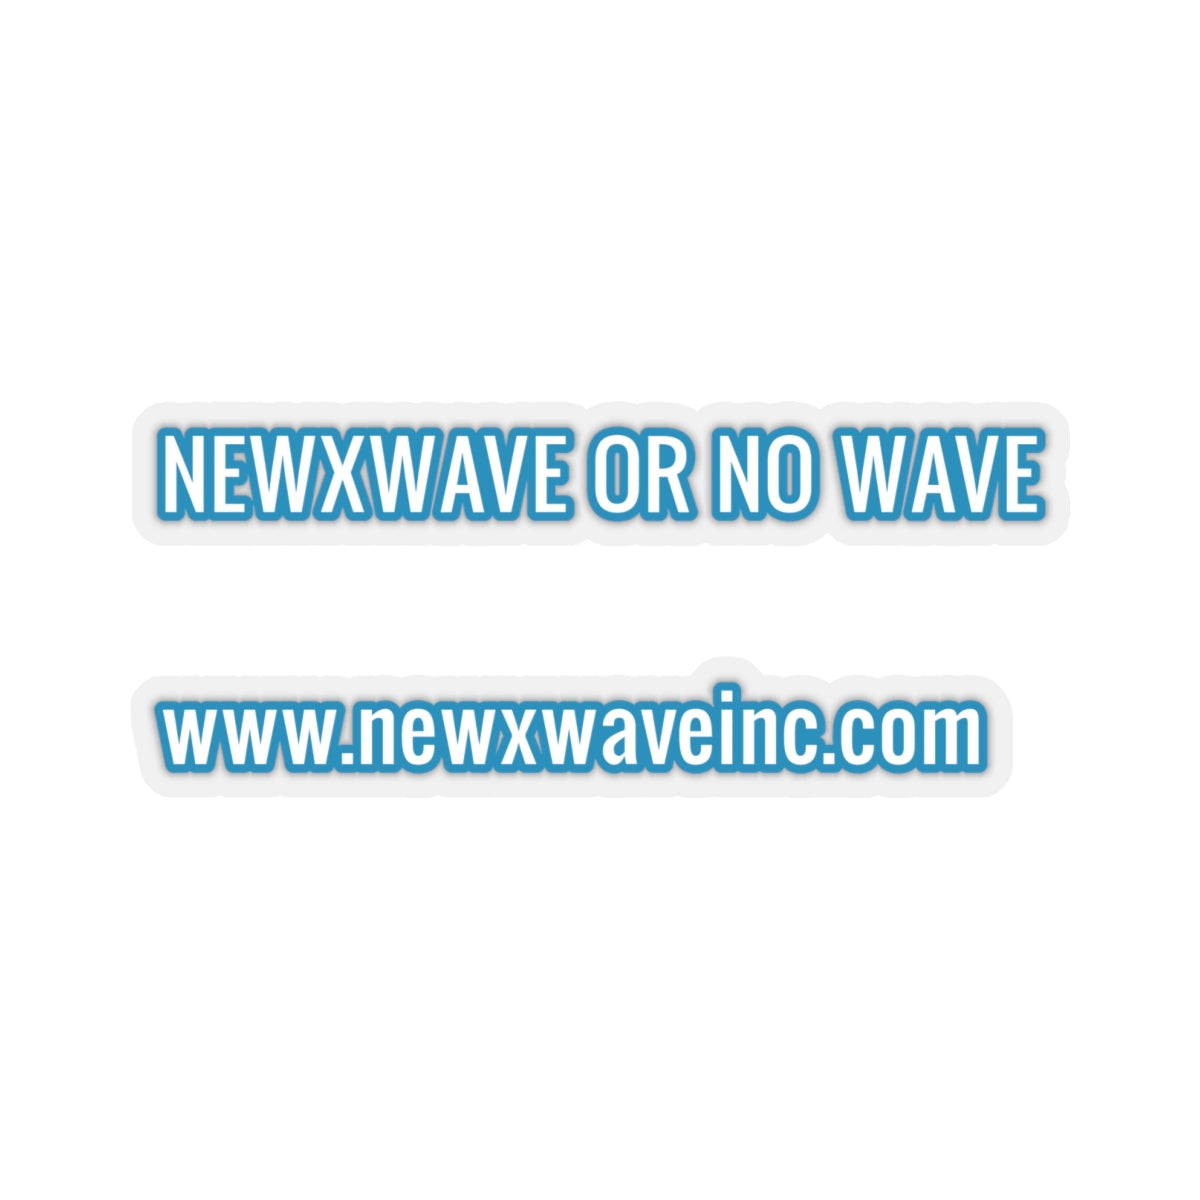 NXW OR NO WV Stickers